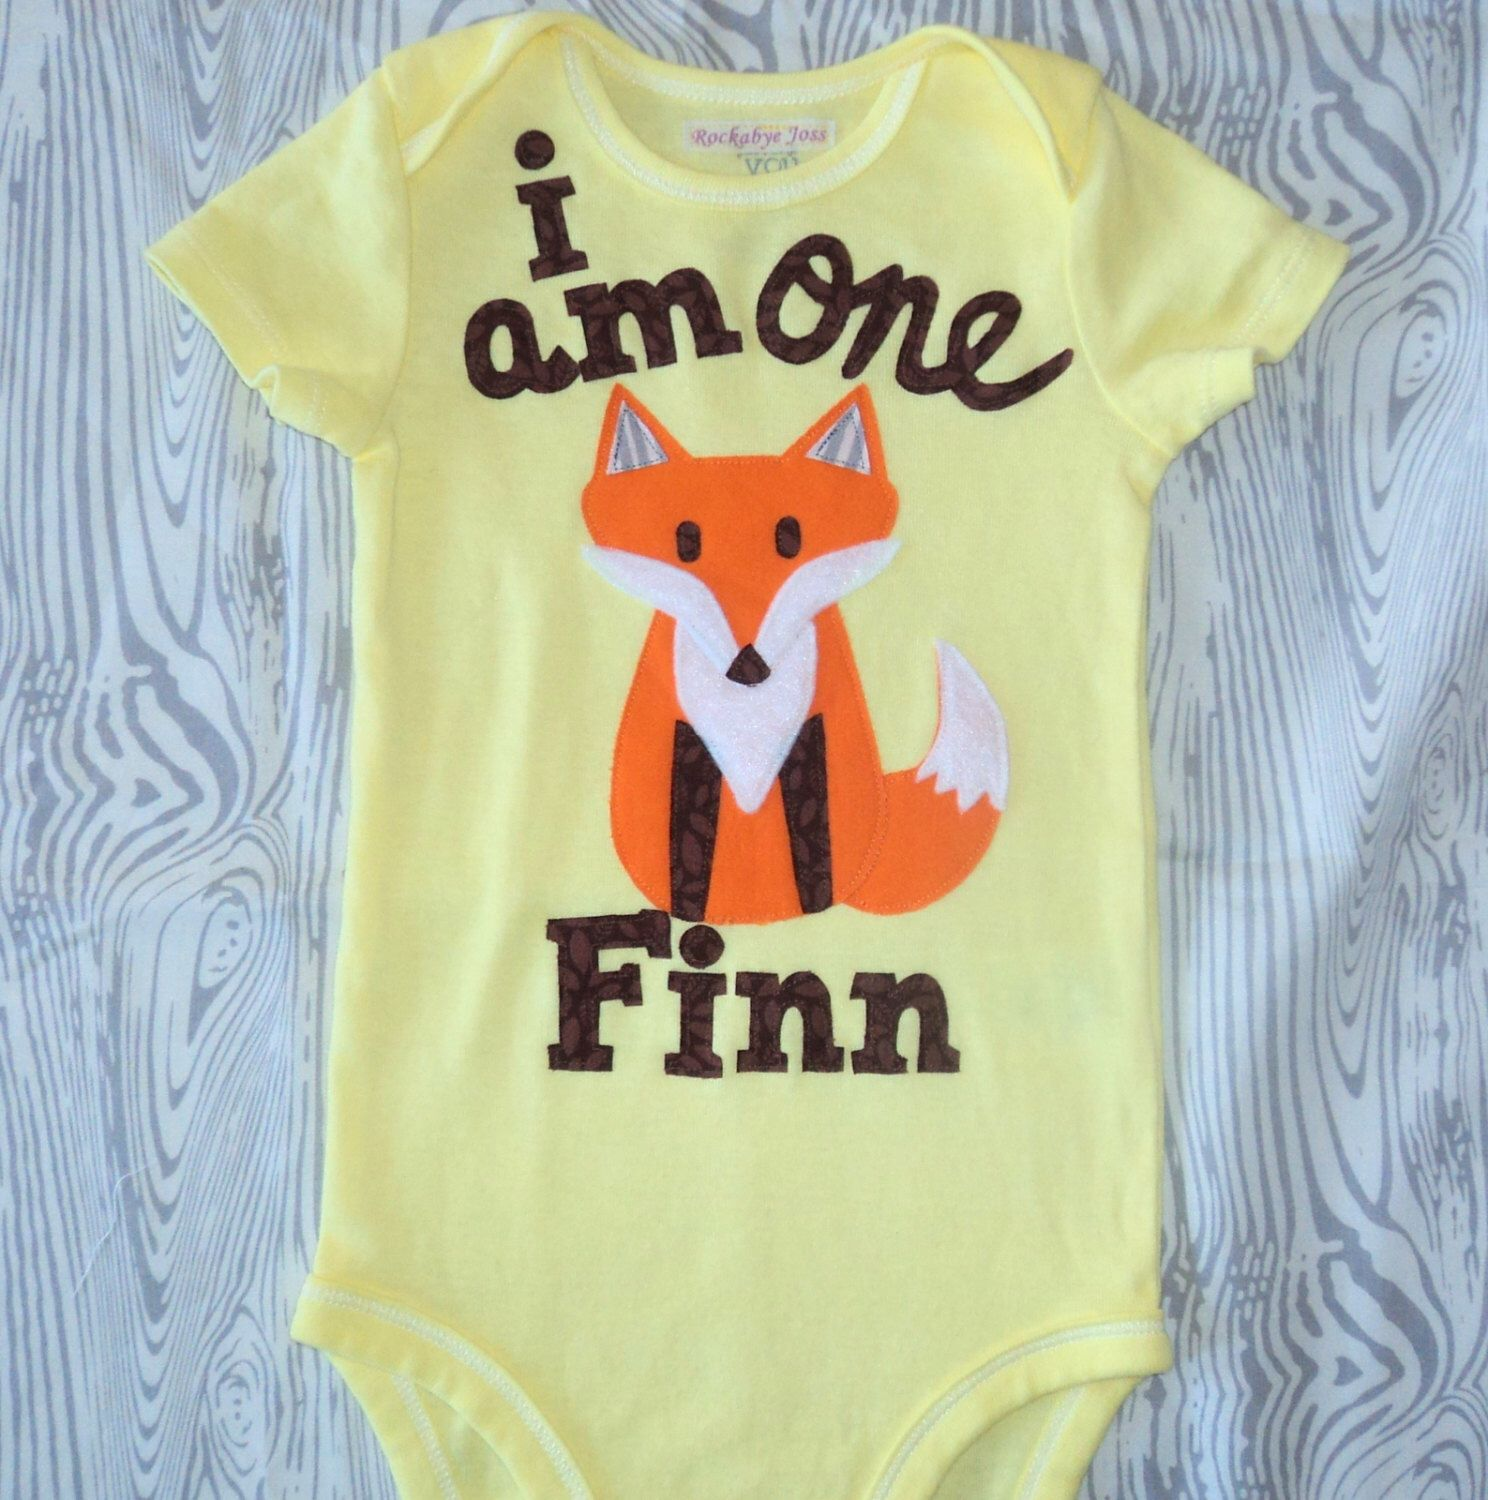 Boys Fox birthday one piece, First birthday shirt, Woodland birthday party, Fall onesie, personalized, One, animal, boys one piece, bodysuit by RockabyeJoss on Etsy https://www.etsy.com/listing/205540098/boys-fox-birthday-one-piece-first